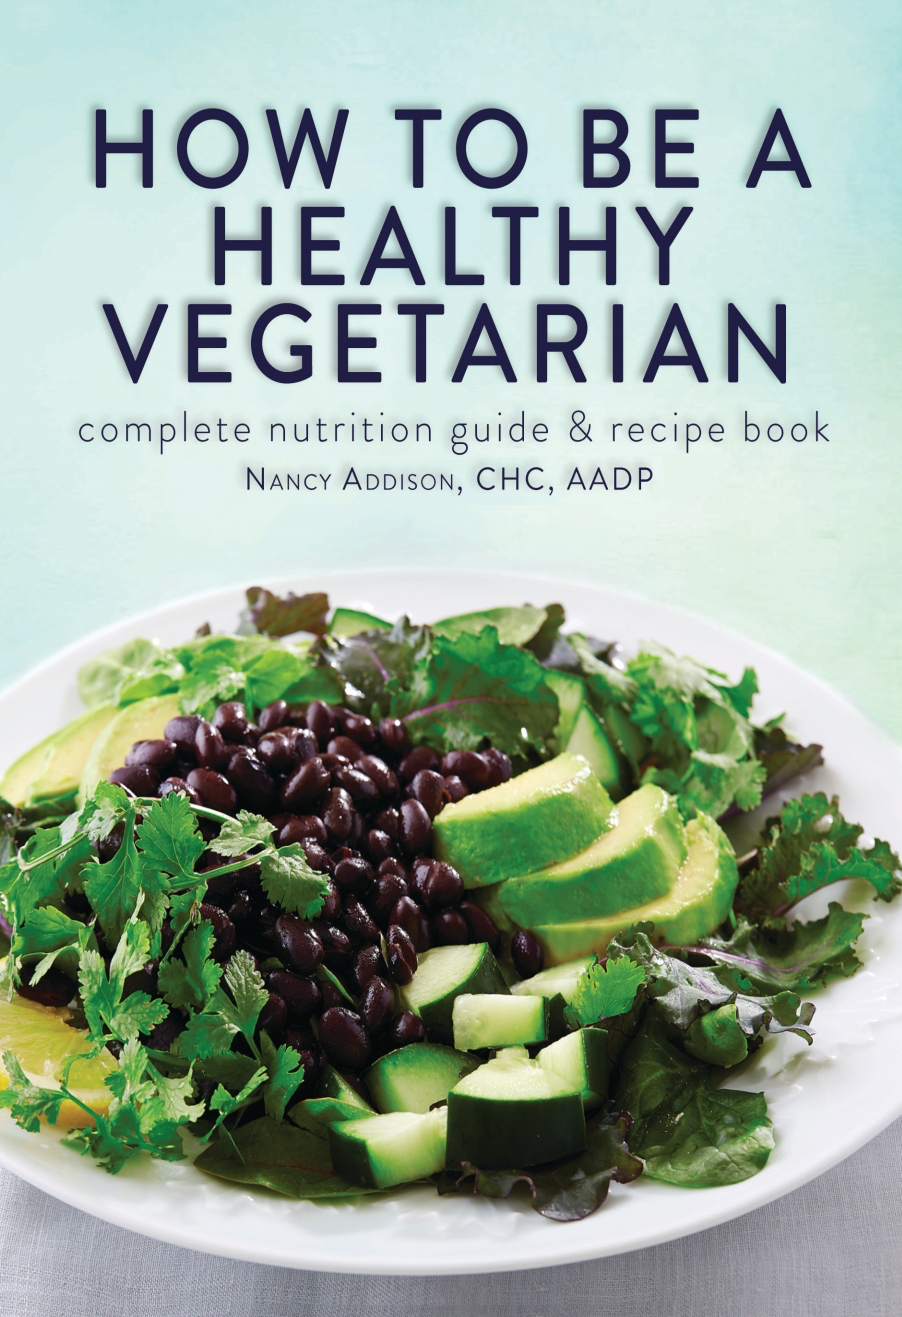 How To Be A Healthy Vegetarian by Nancy Addison,  second edition,  - kindle cover draft 08-05-2015 copy